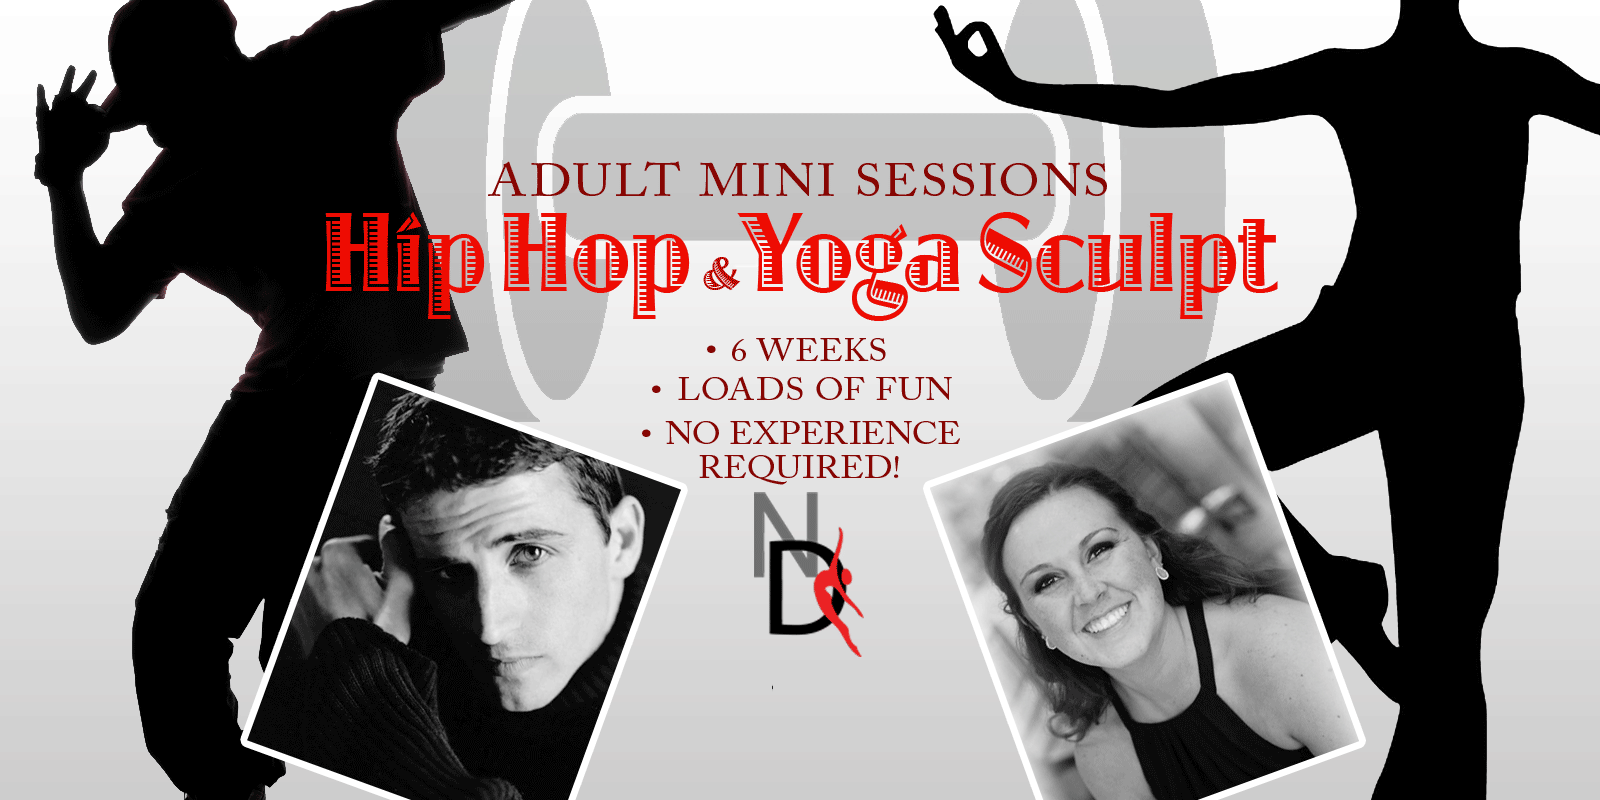 champlin dance adult mini sessions hip hop yoga sculpt